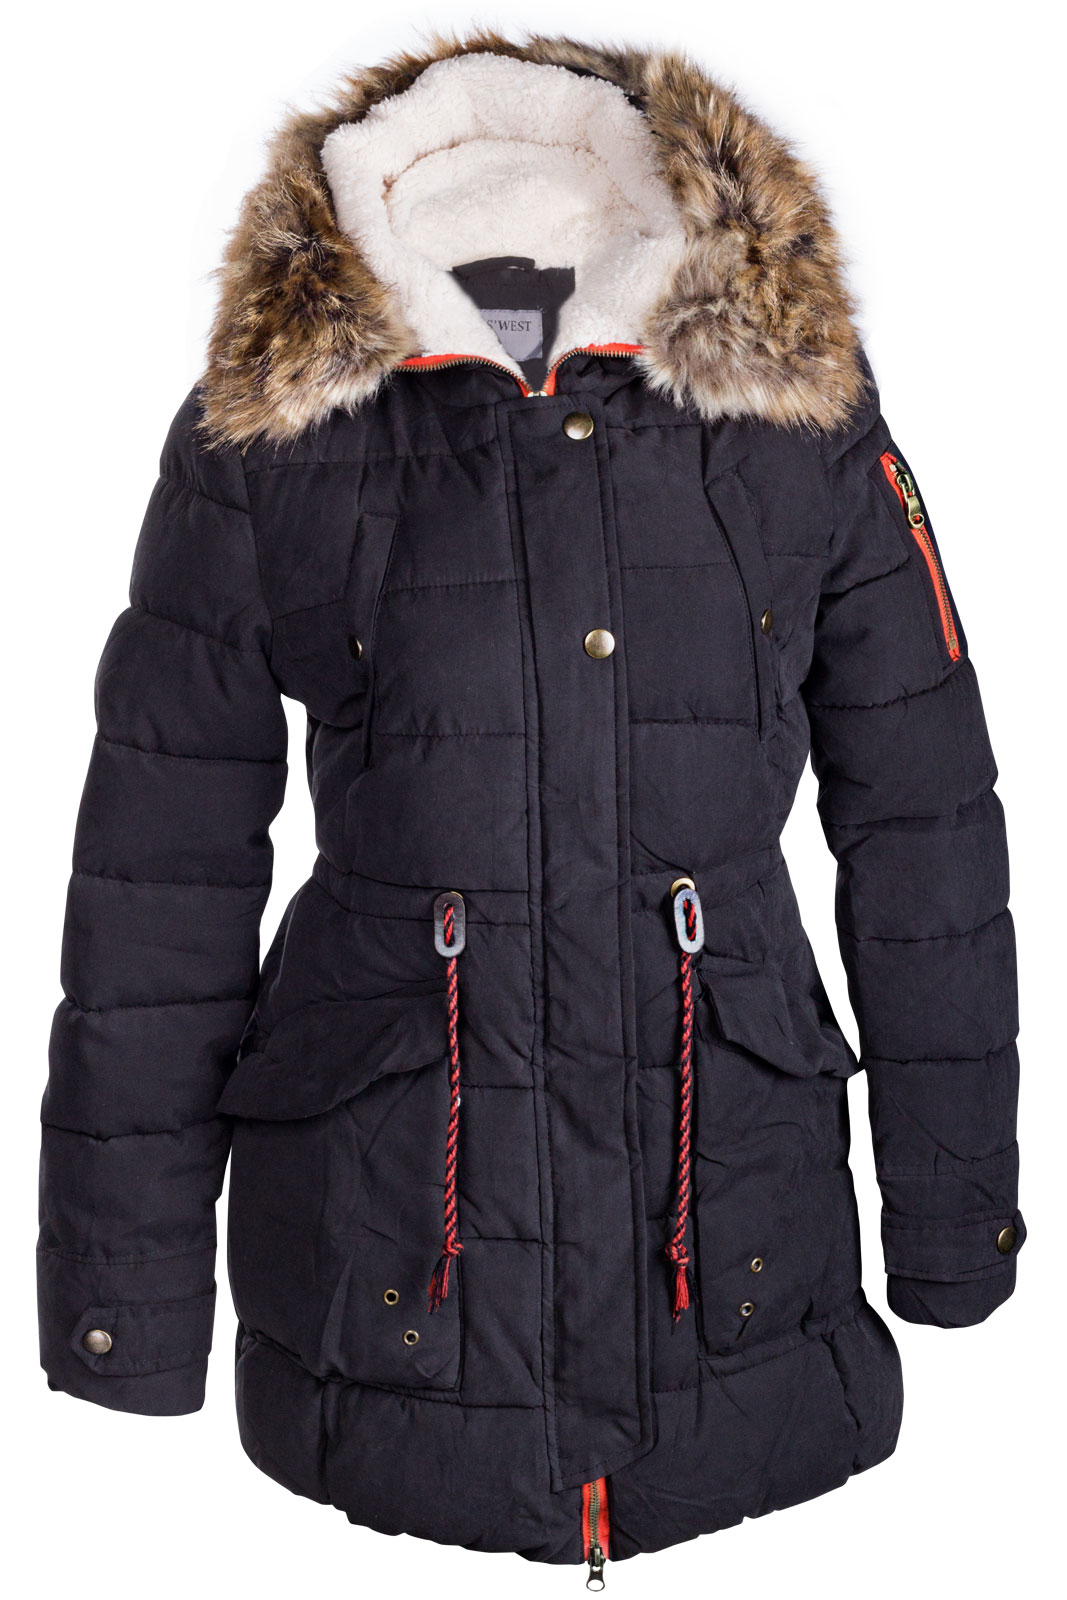 damen winter mantel jacke fell 2 in 1 kapuze stepp parka lang pelz alaska ebay. Black Bedroom Furniture Sets. Home Design Ideas